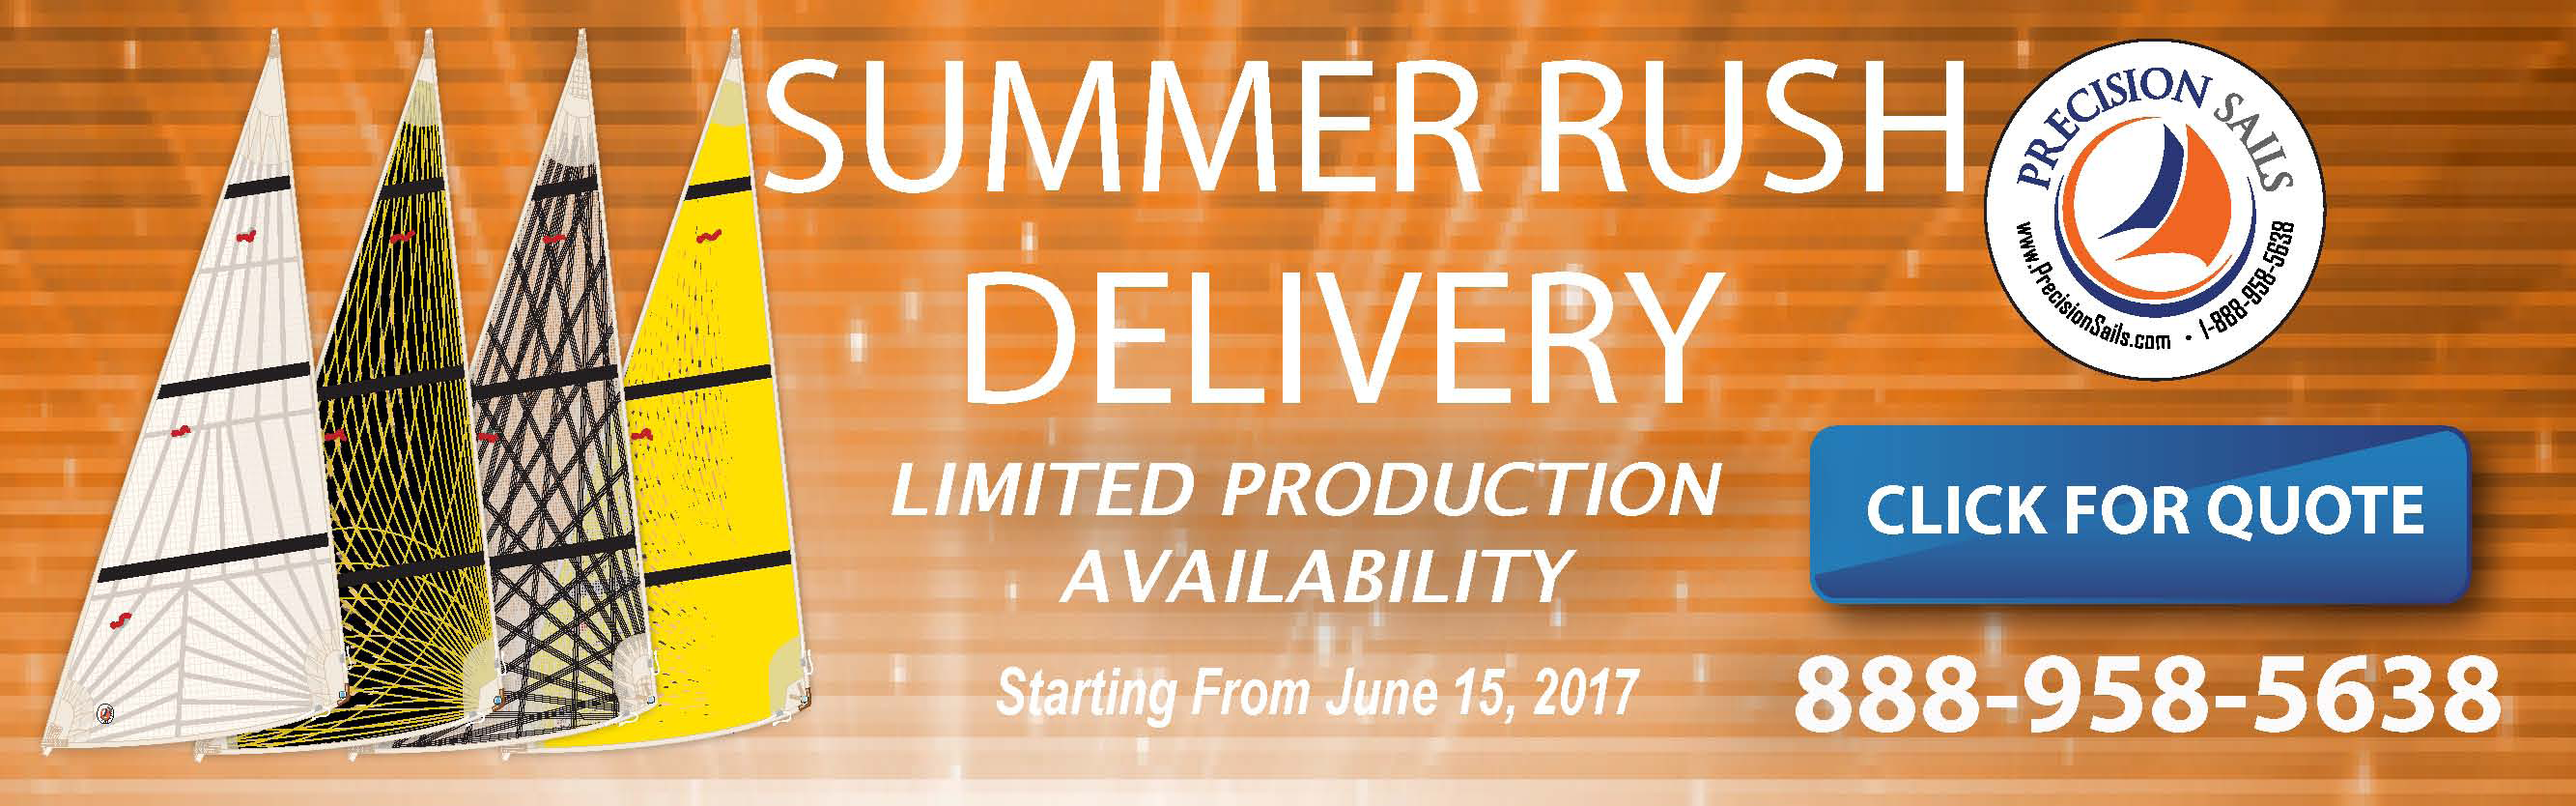 Summer Rush Delivery Available